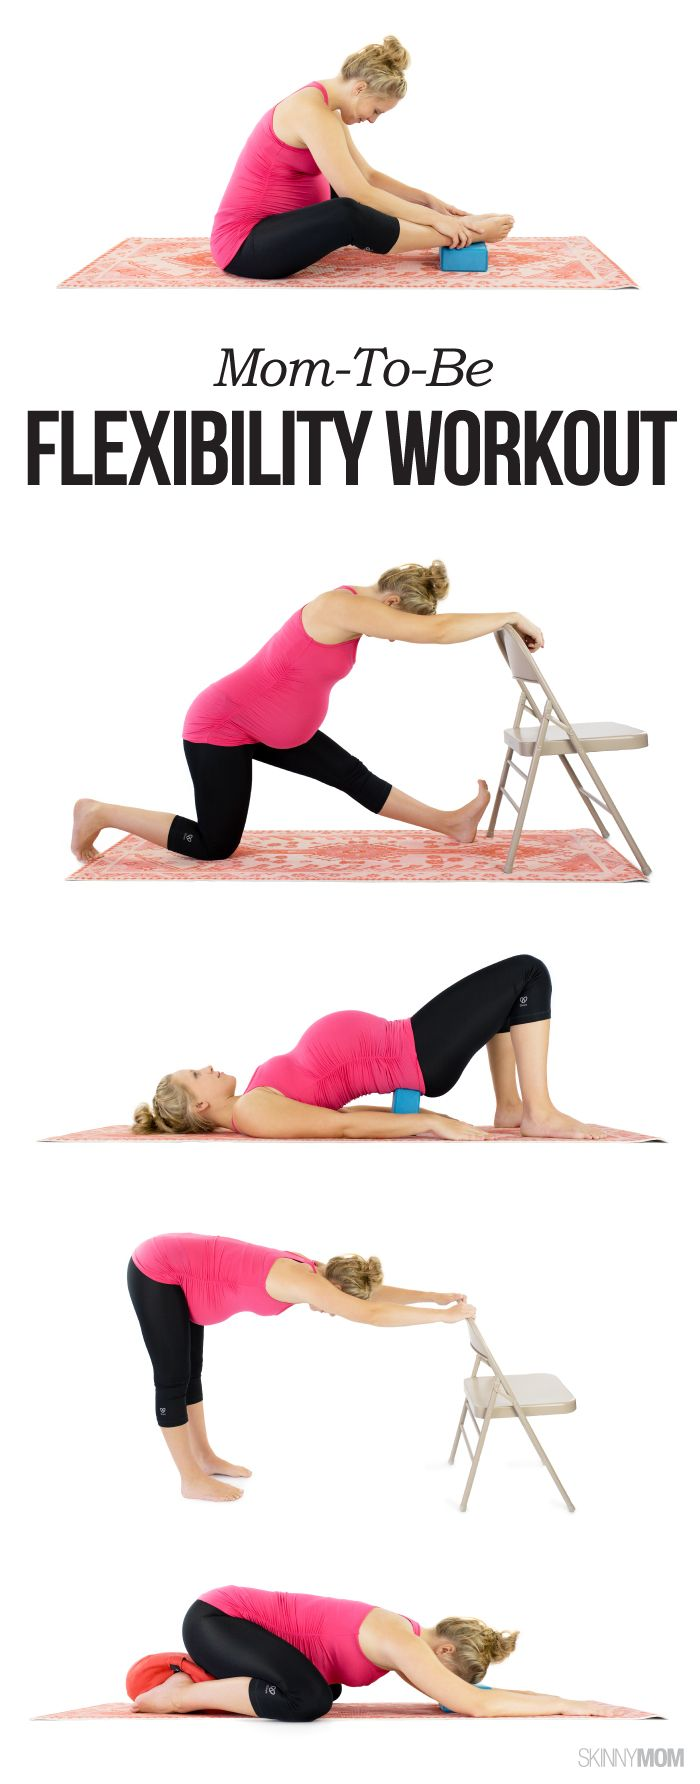 Here's a great workout for our pregnant mamas!